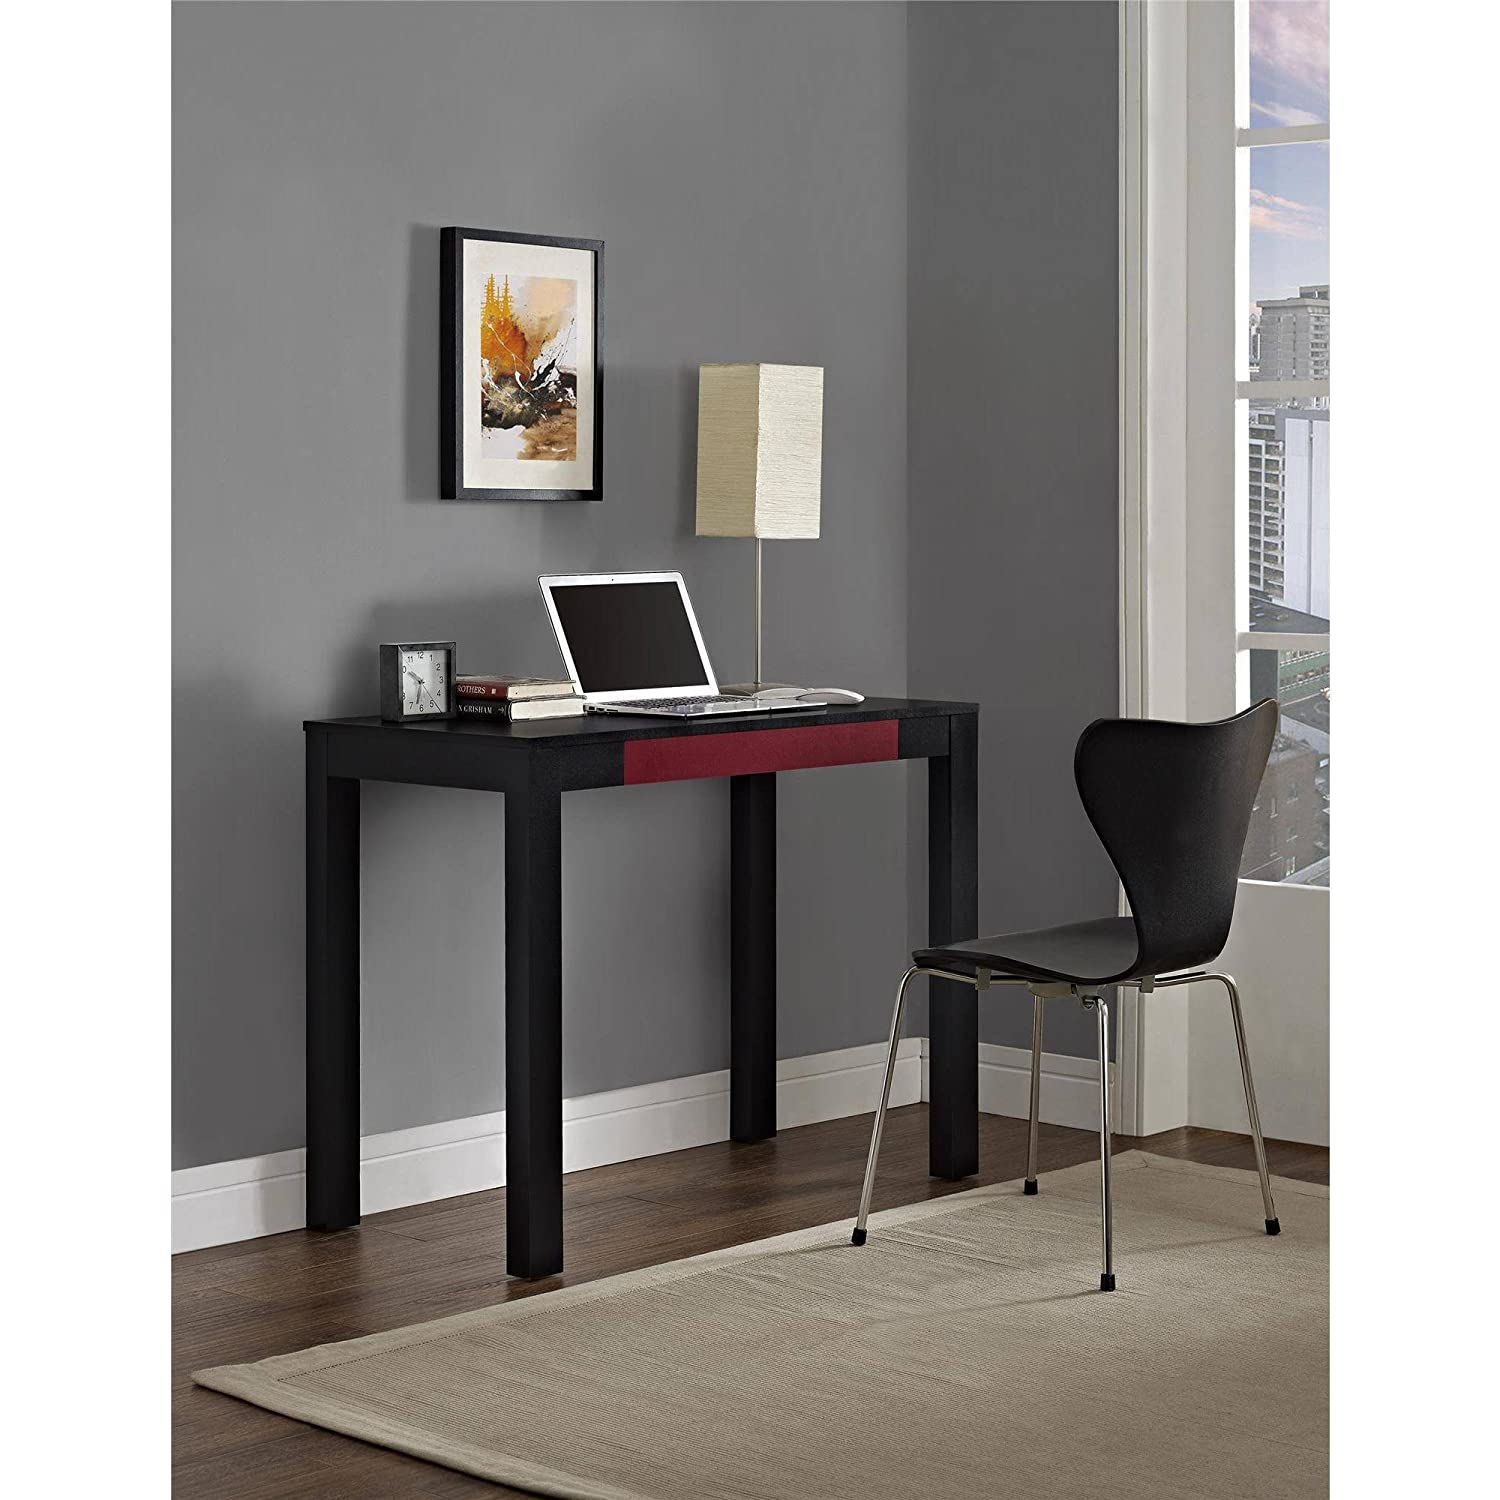 """Parsons Desk With Colored Drawer, Multiple Colors Parsons styling Large work surface Storage pencil drawer holds small office supplies Convenient size desk Product Dimensions: 19.69""""W x 38.98""""D x 30""""H"""